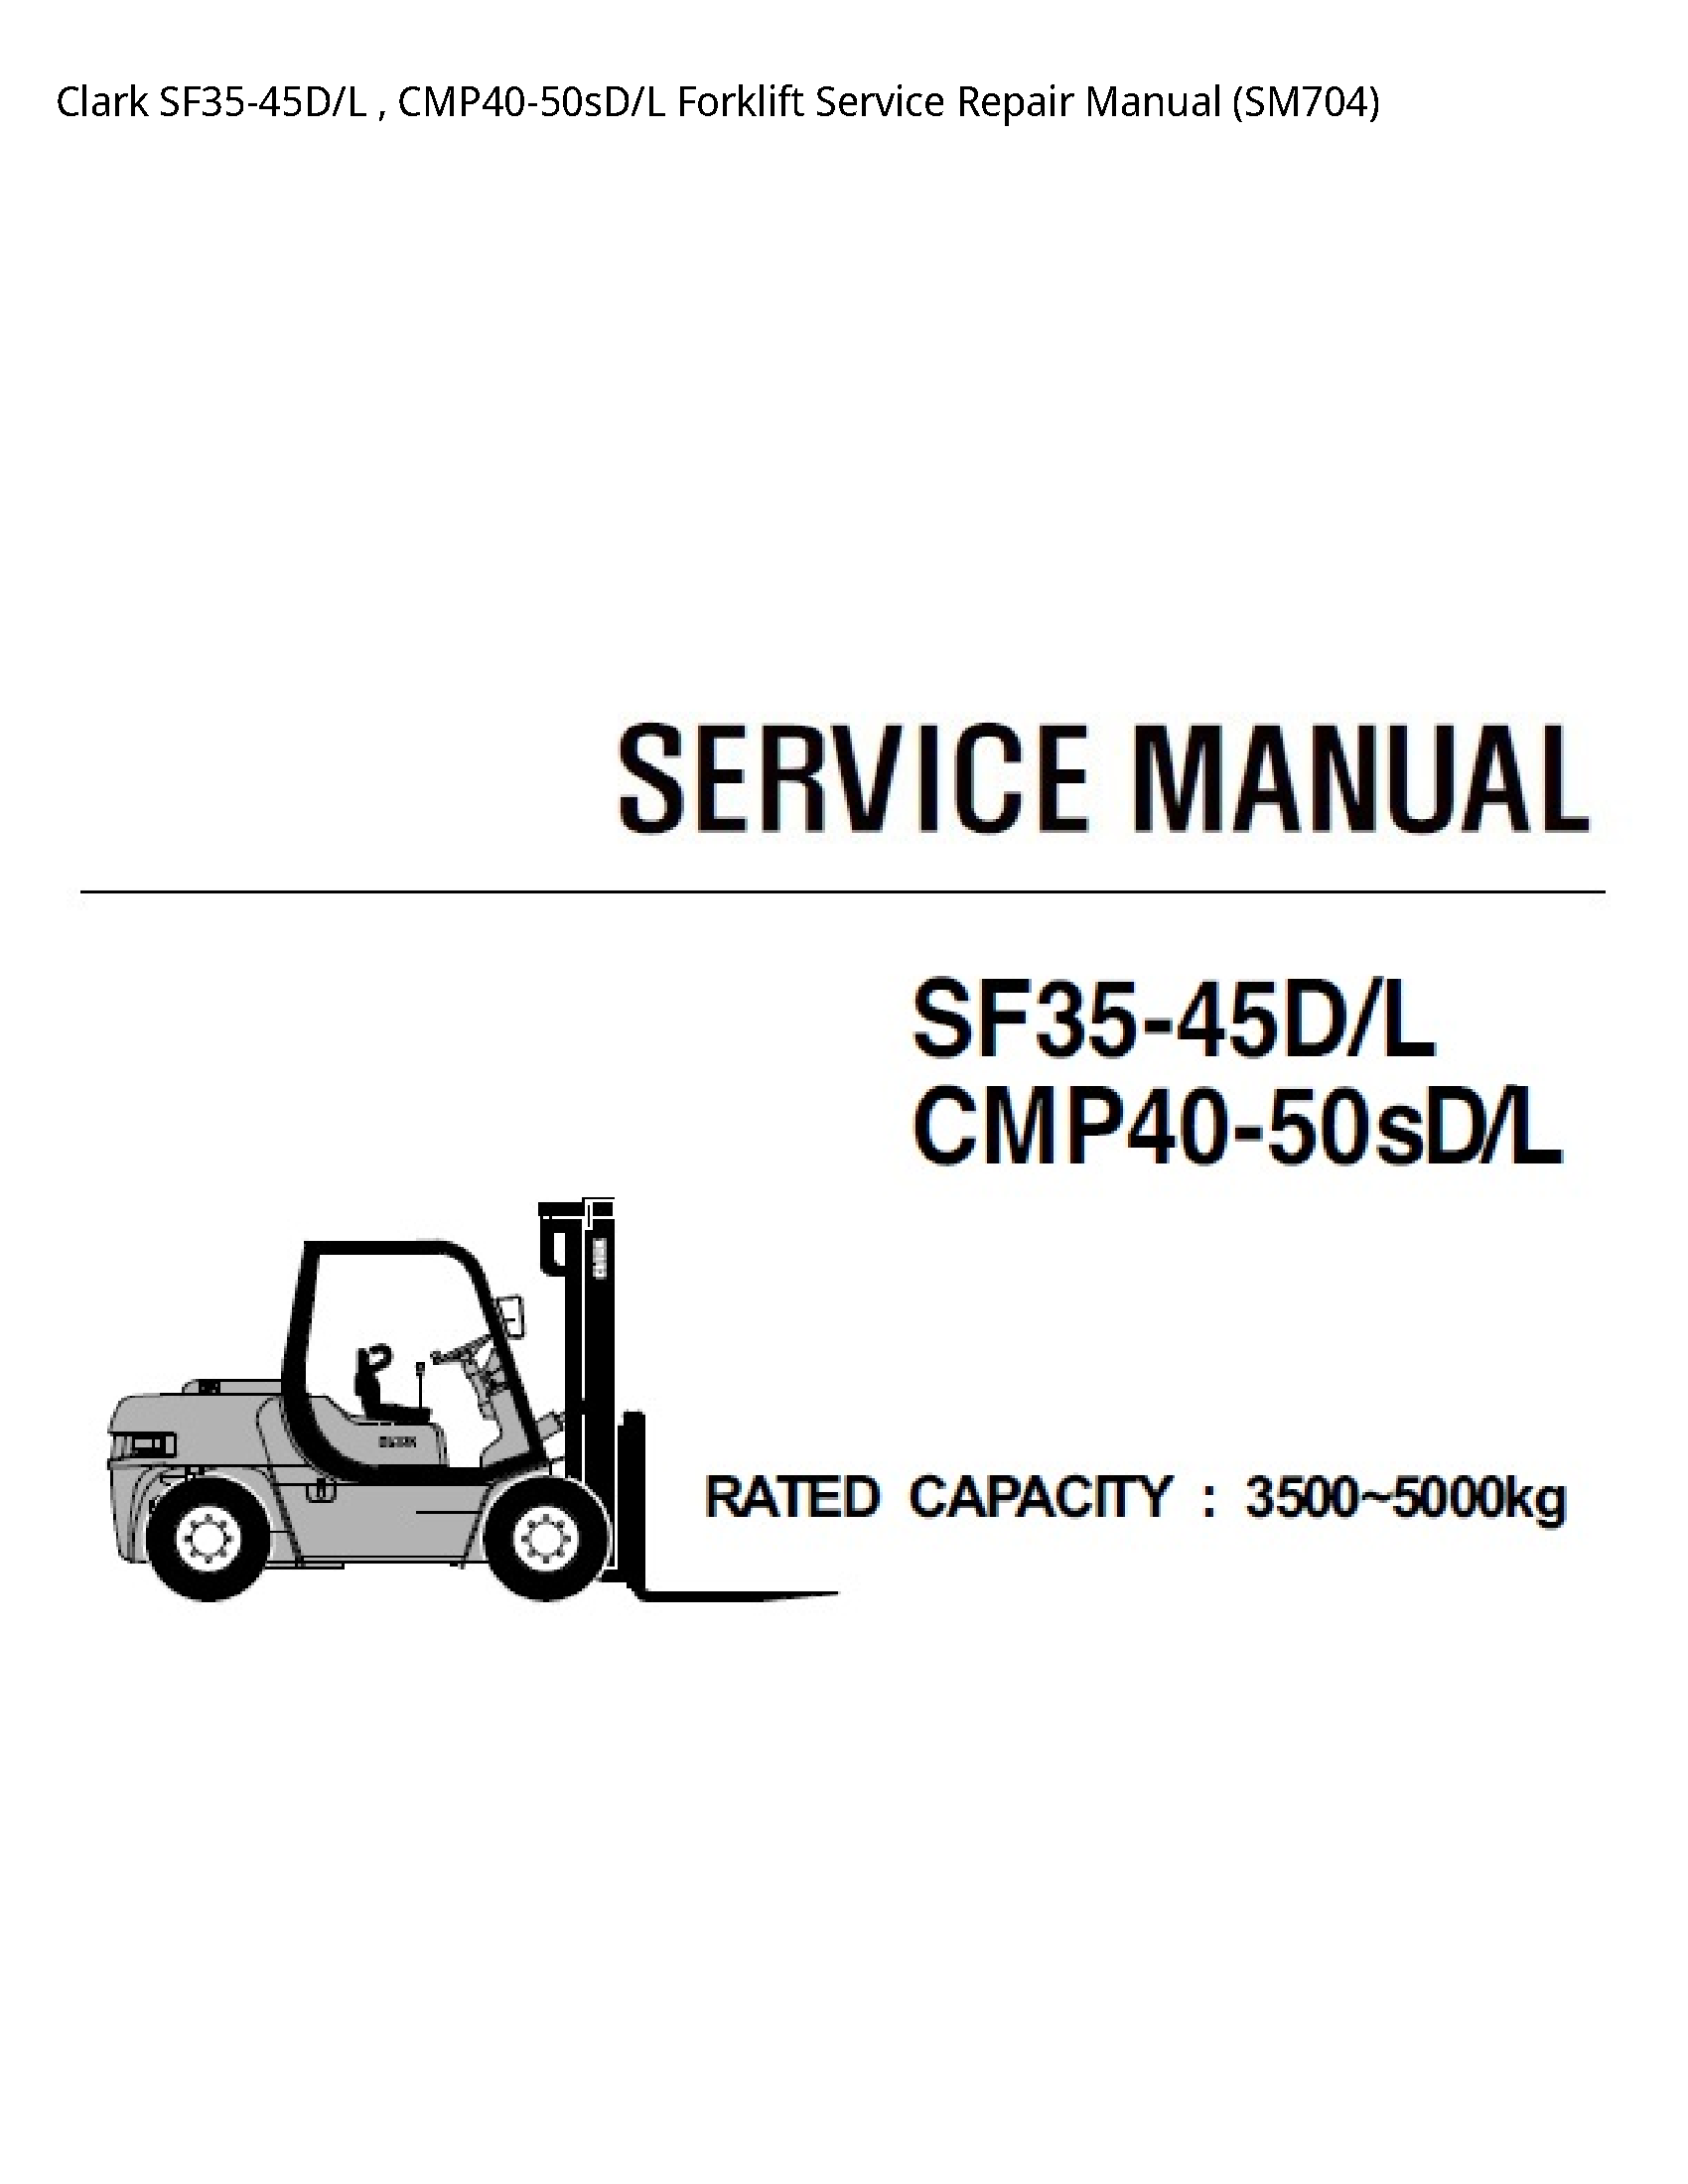 Clark SF35-45D Forklift manual